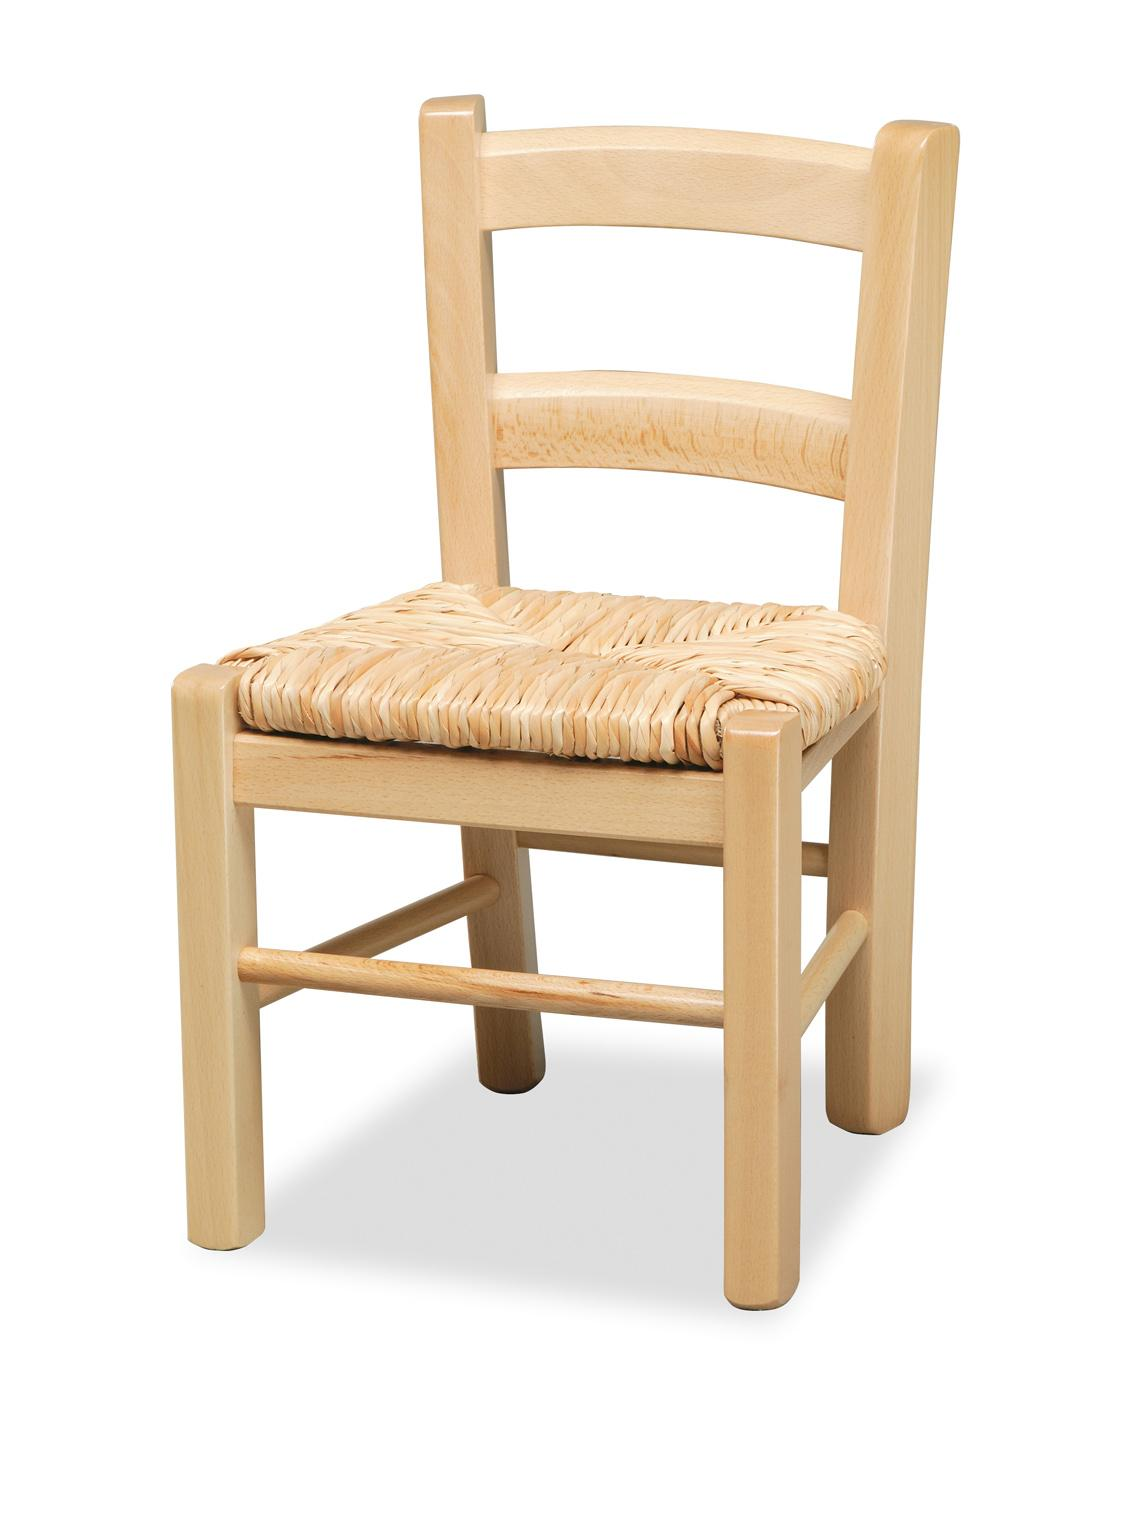 Awesome Plans For Wood Chair PDF Woodworking